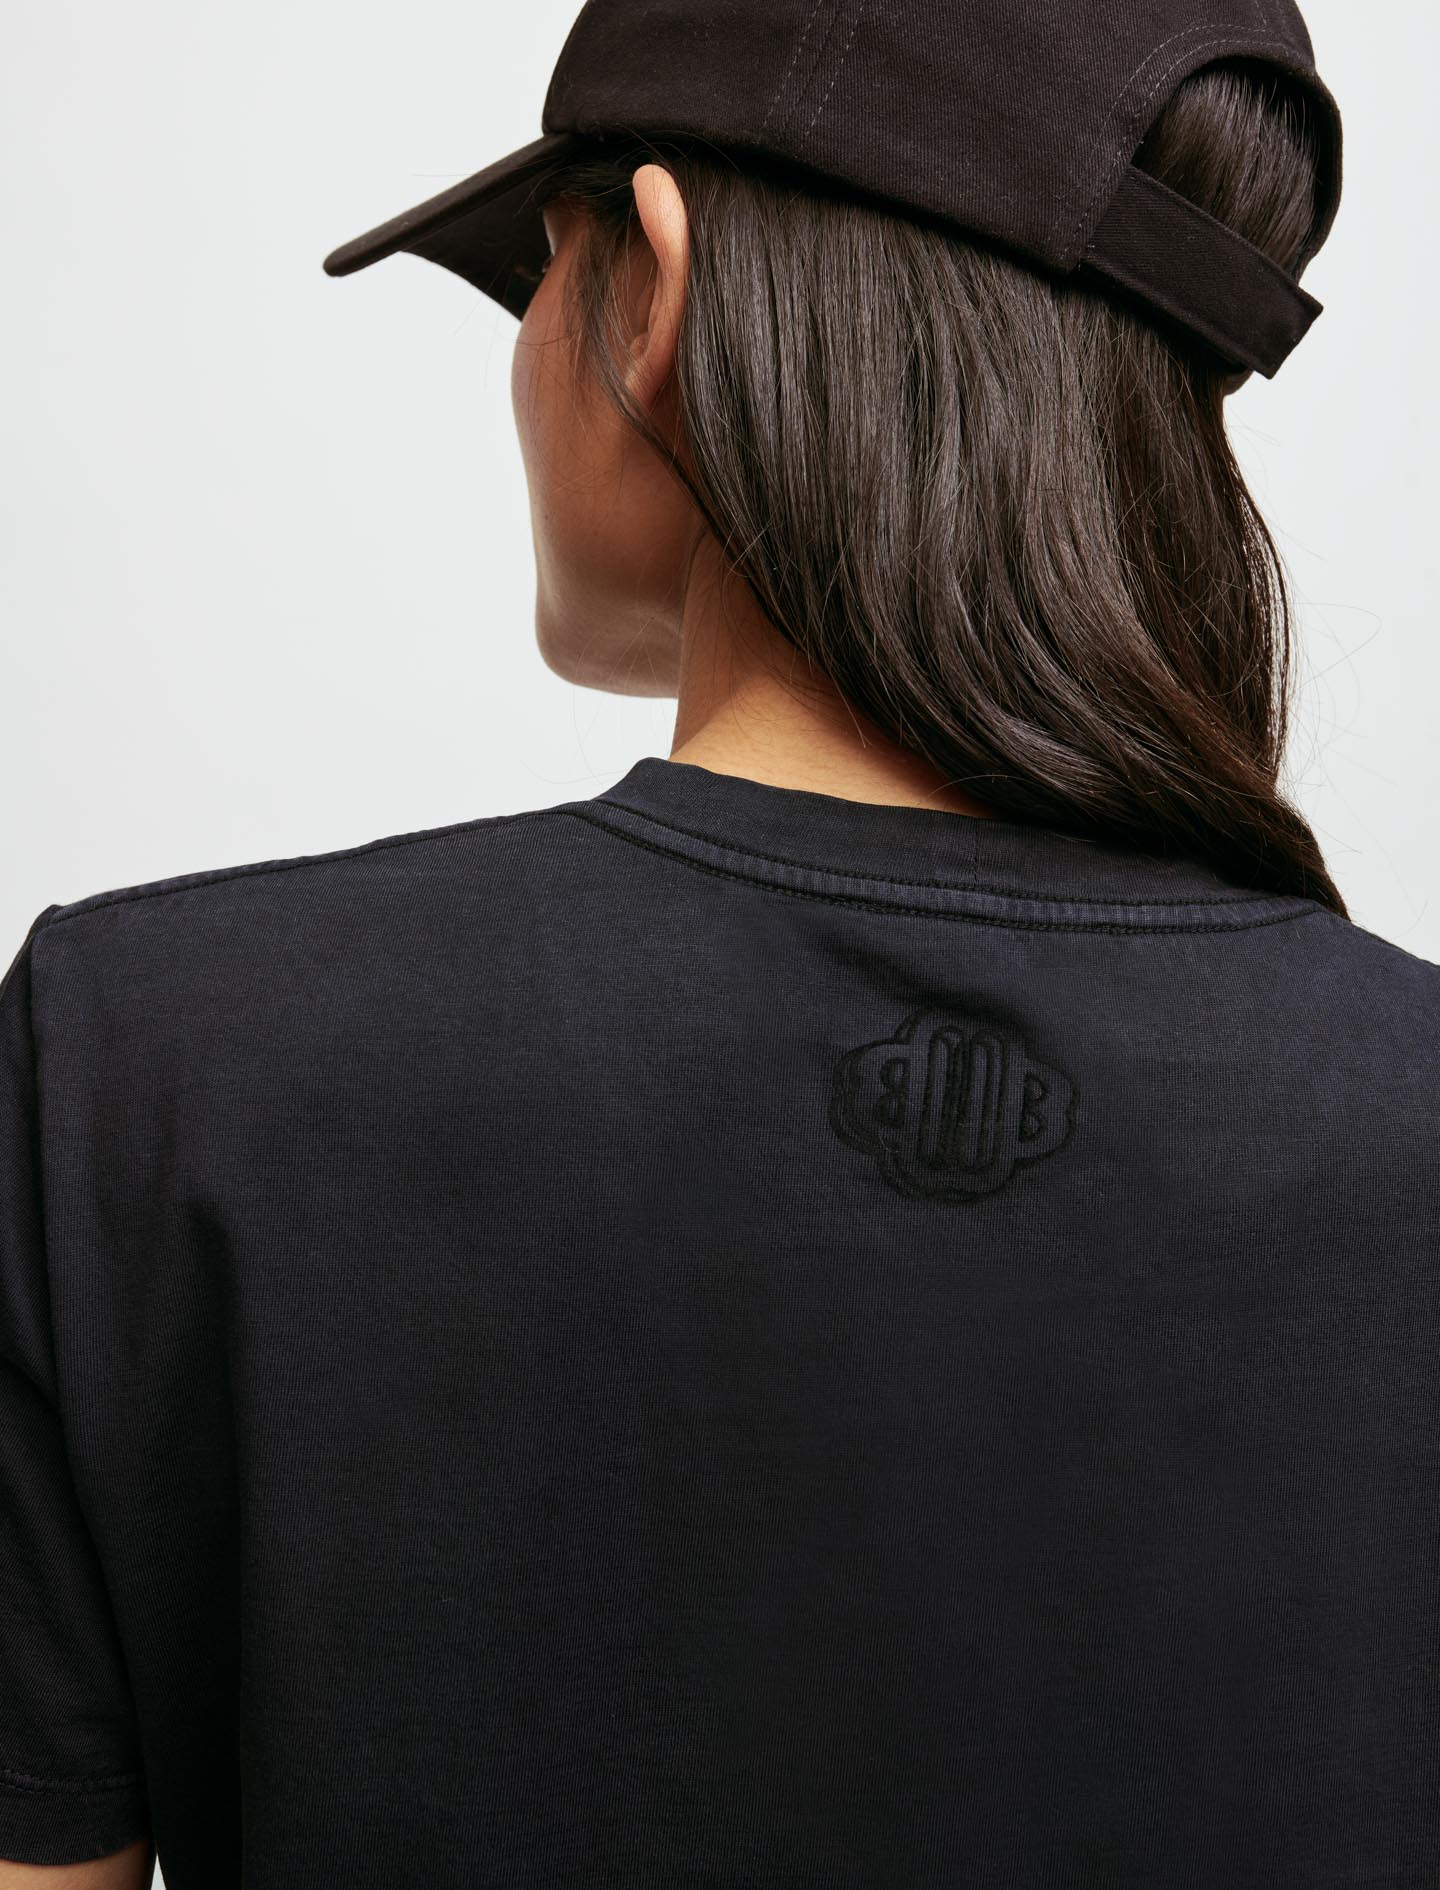 Jersey t shirt with gradient music - Black